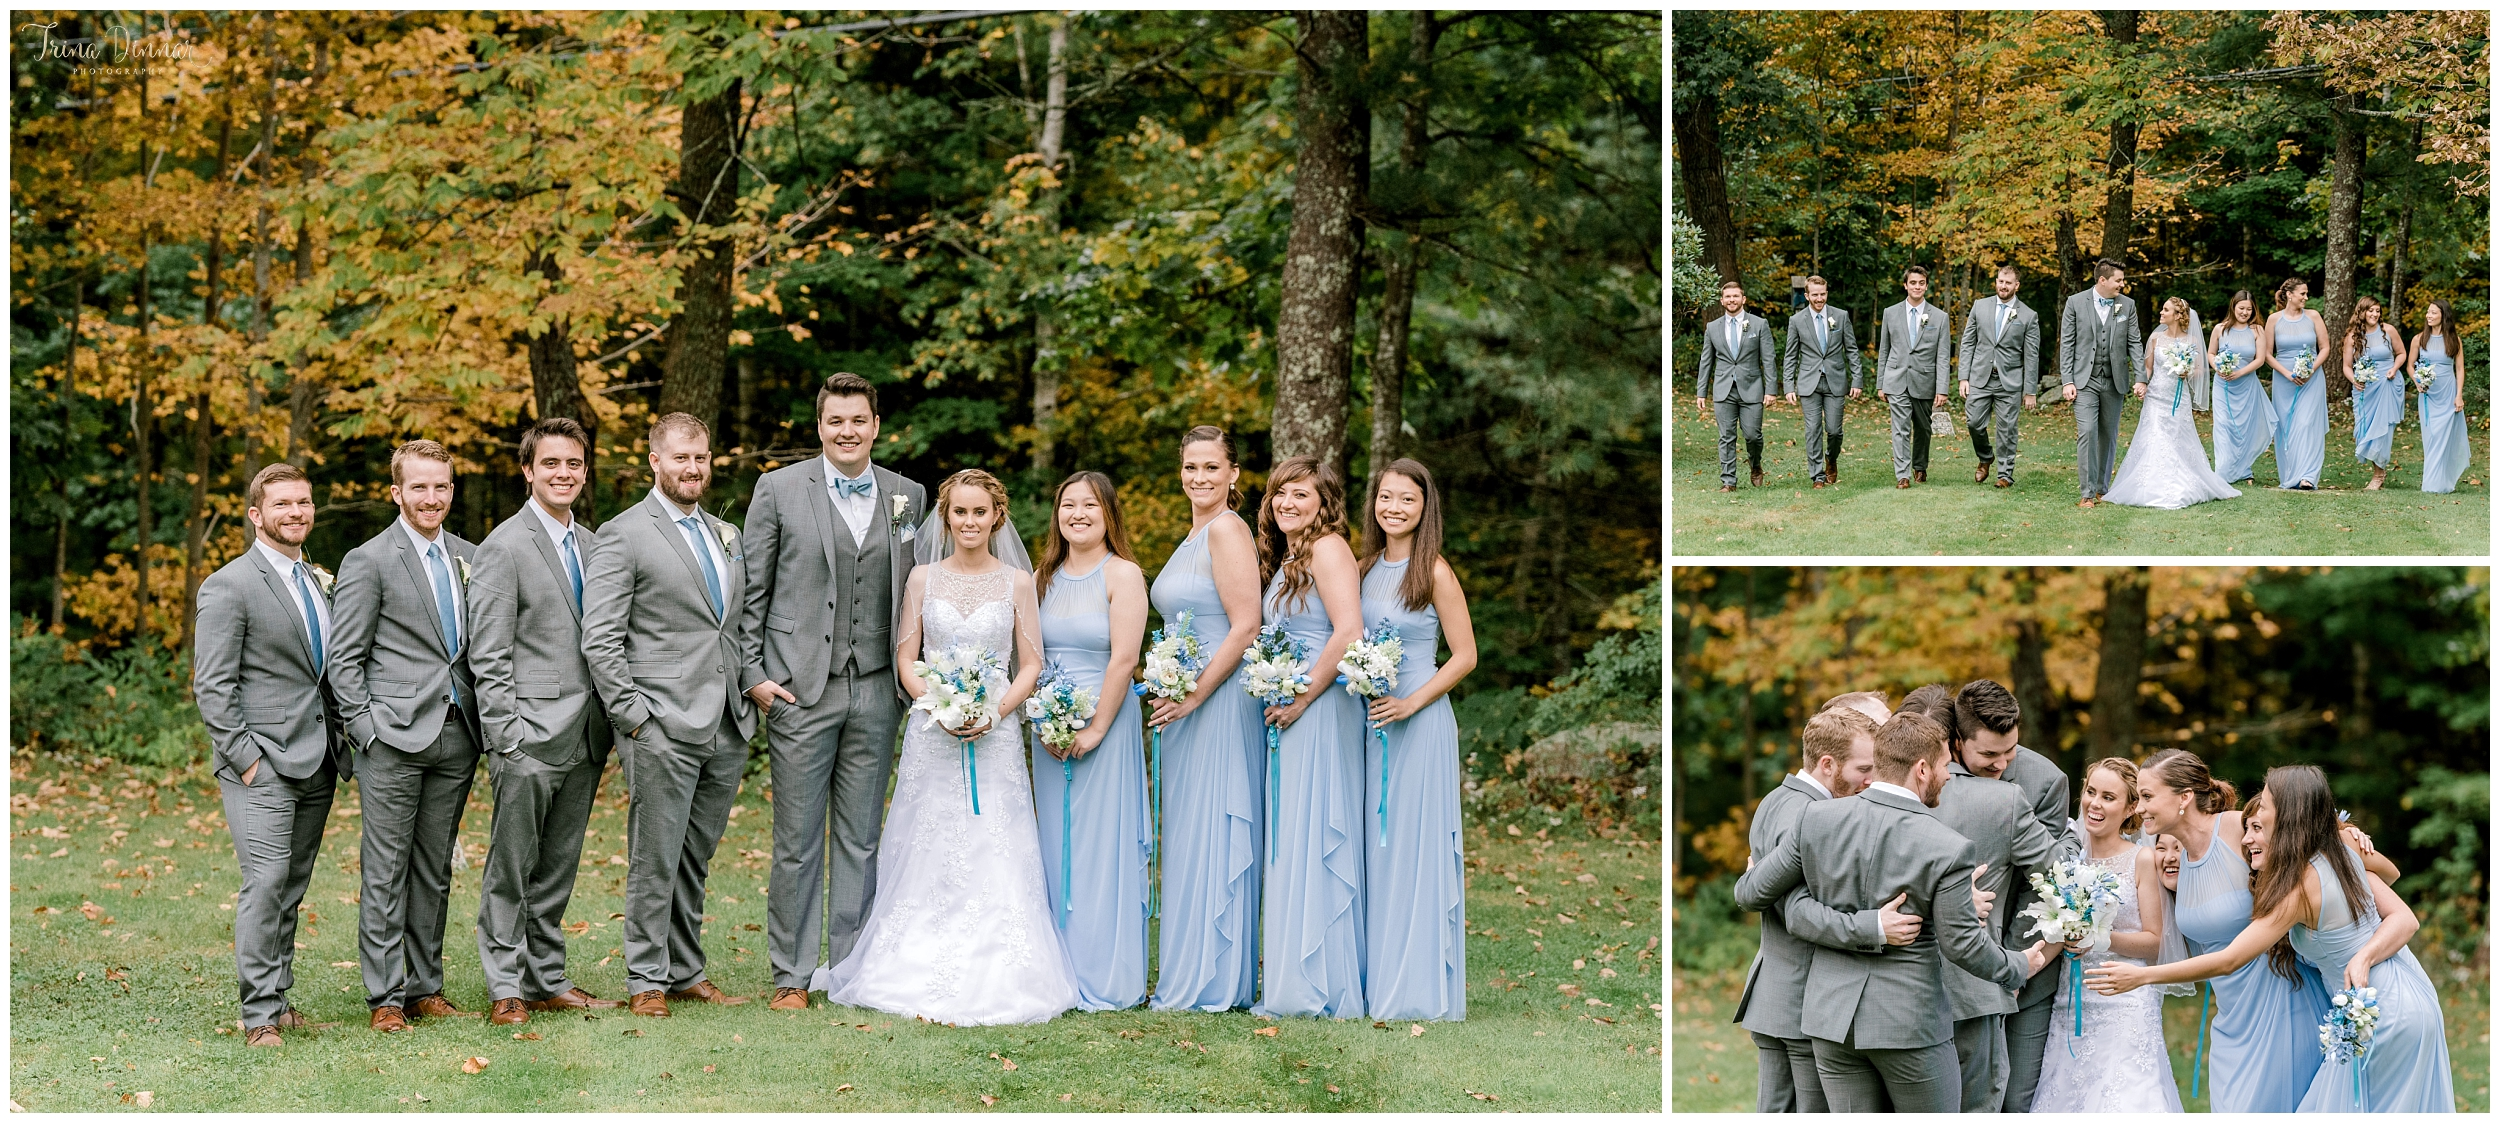 Maine wedding party portrait photography